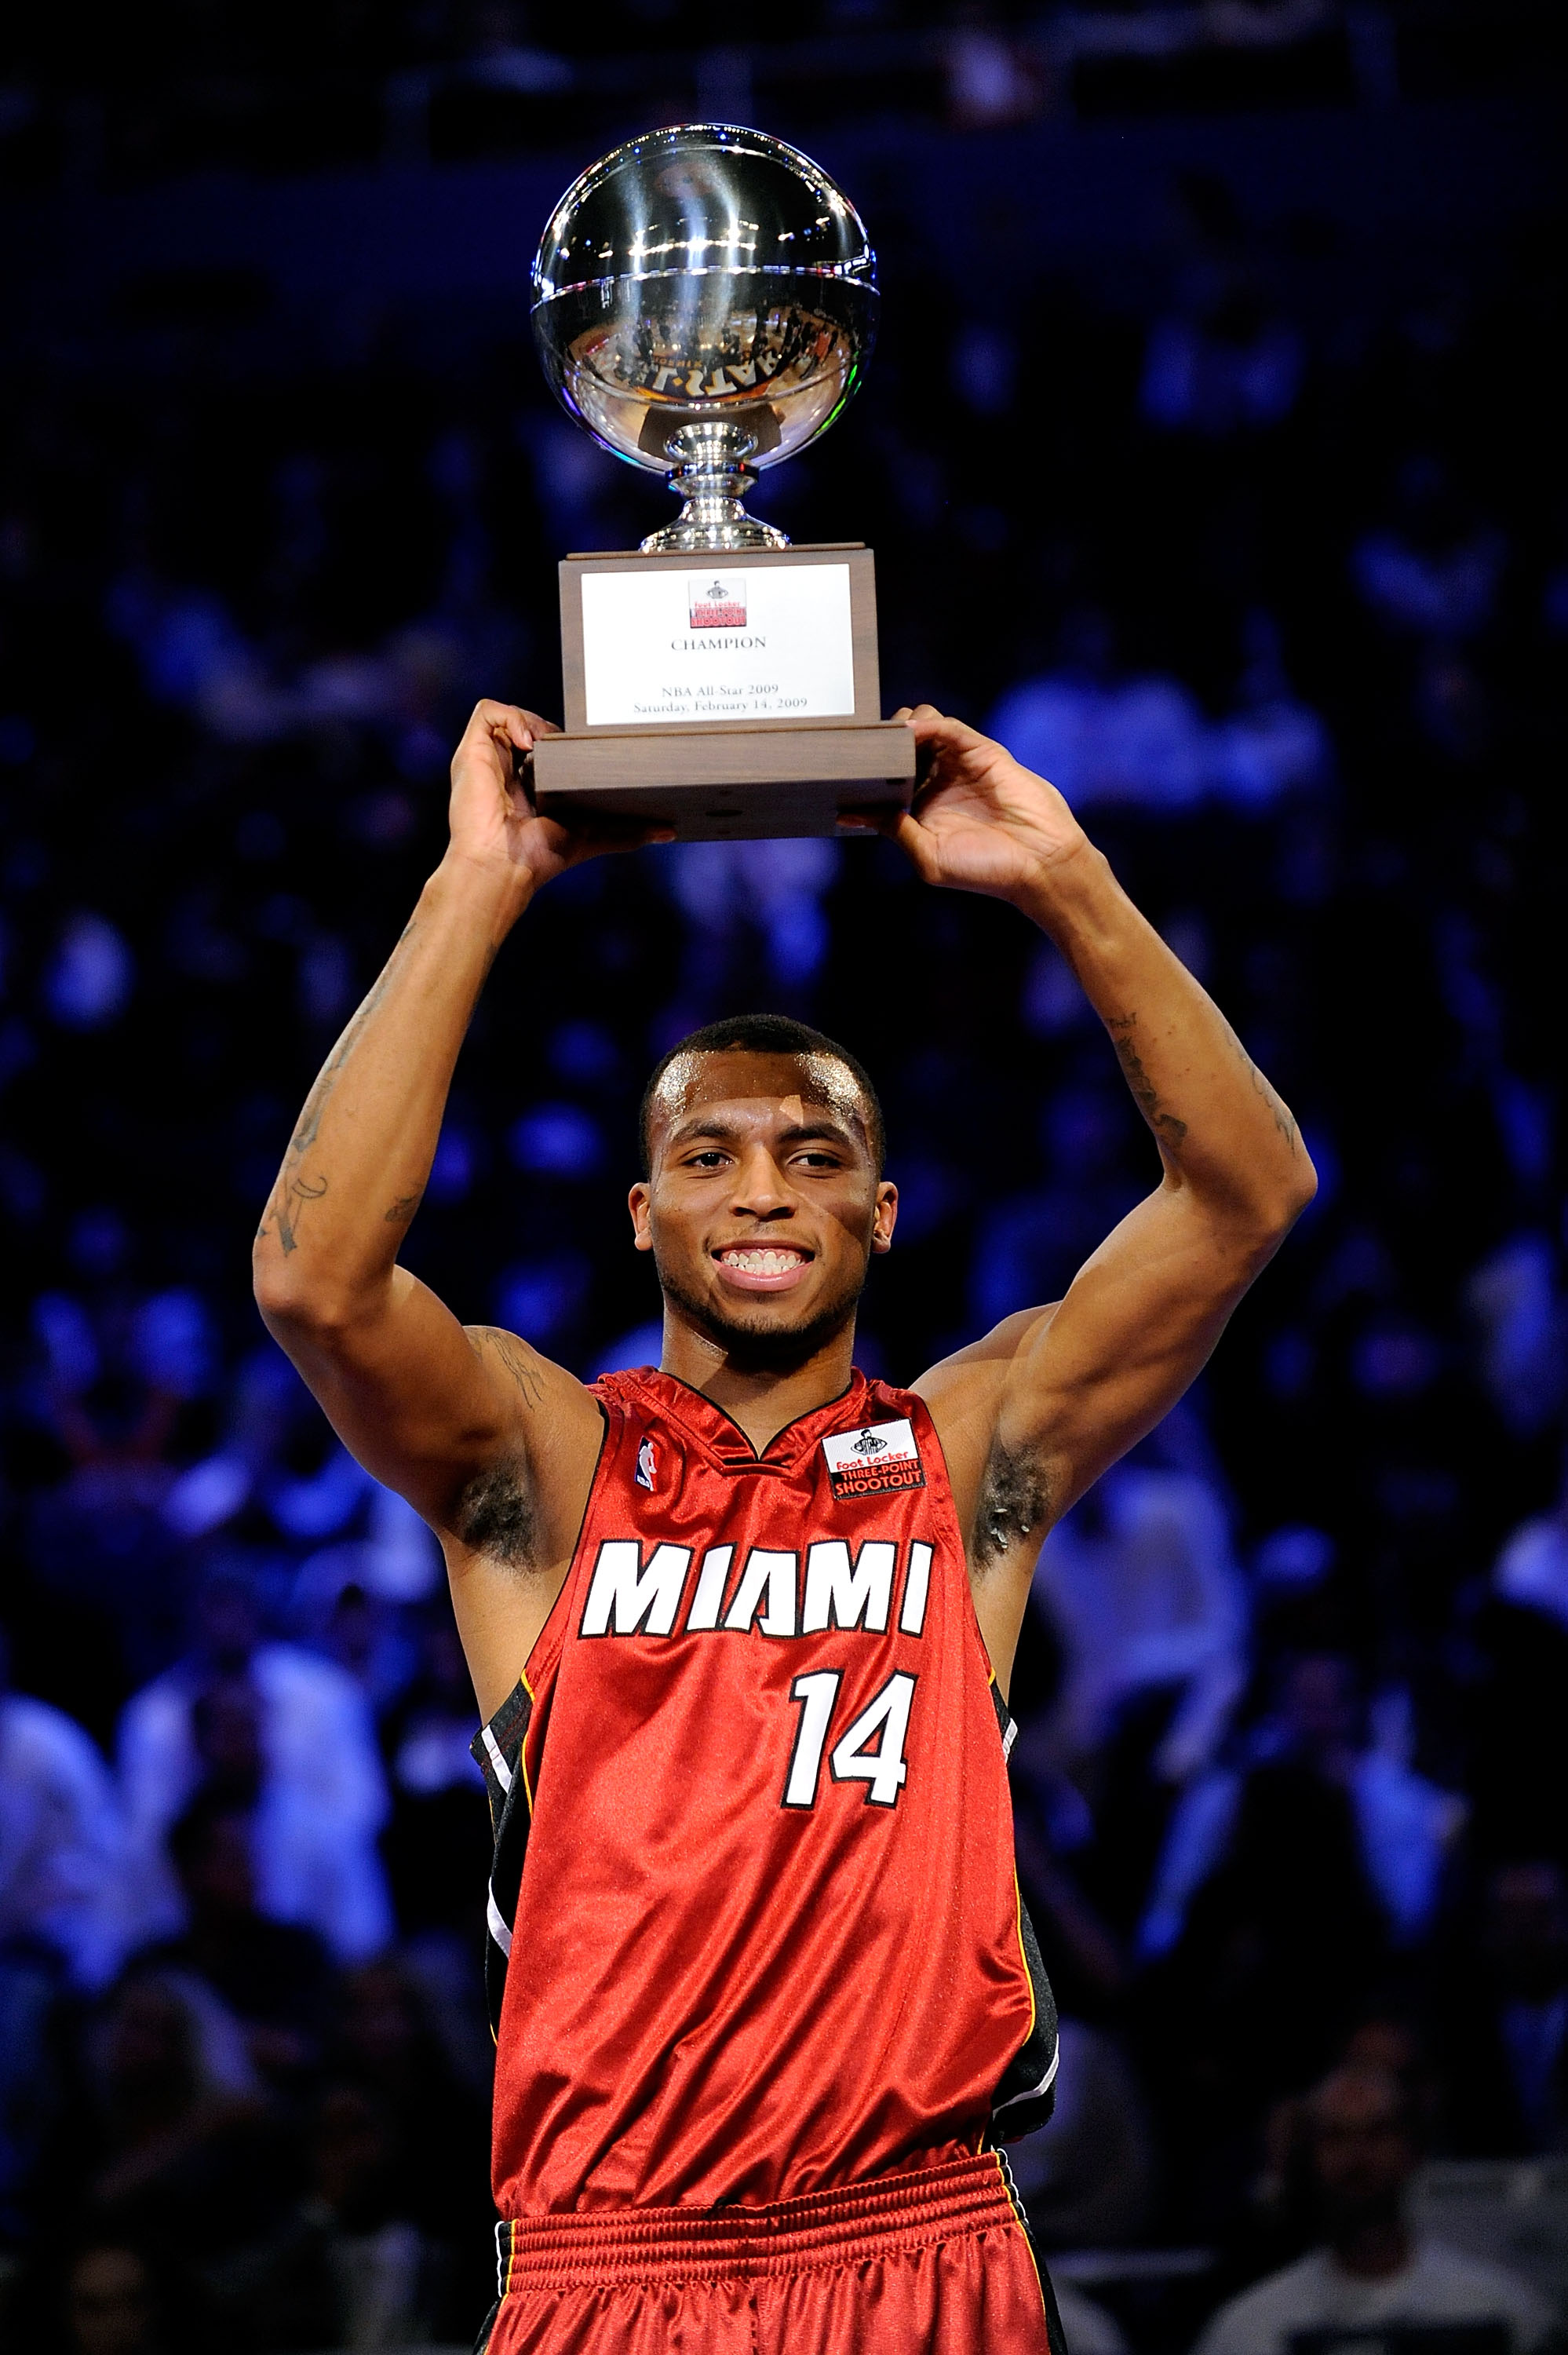 dfa48d91ed5 Daequan Cook was drafted in 2007 by the Miami Heat with the twenty-first  pick of the first round.